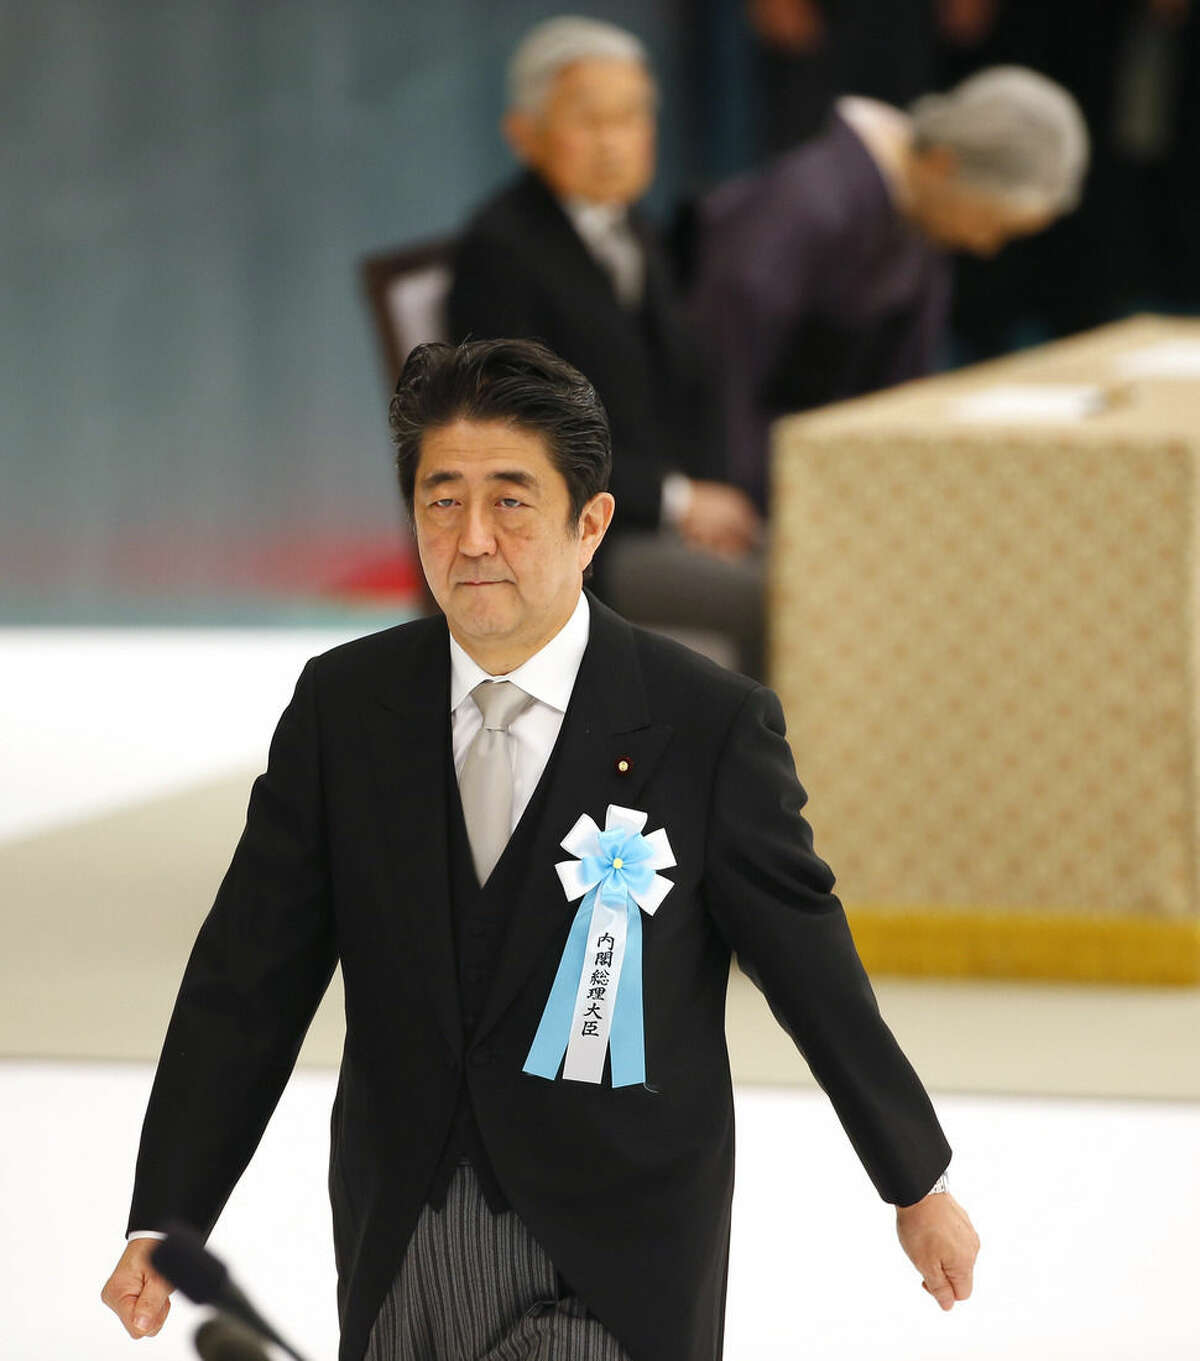 Japanese Prime Minister Shinzo Abe leaves after delivering his remarks during a memorial service at Nippon Budokan martial arts hall in Tokyo, Saturday, Aug. 15, 2015. Japan marked Saturday the 70th anniversary of the end of World War II. Sitting in the background are Emperor Akihito and Empress Michiko. (AP Photo/Shizuo Kambayashi)